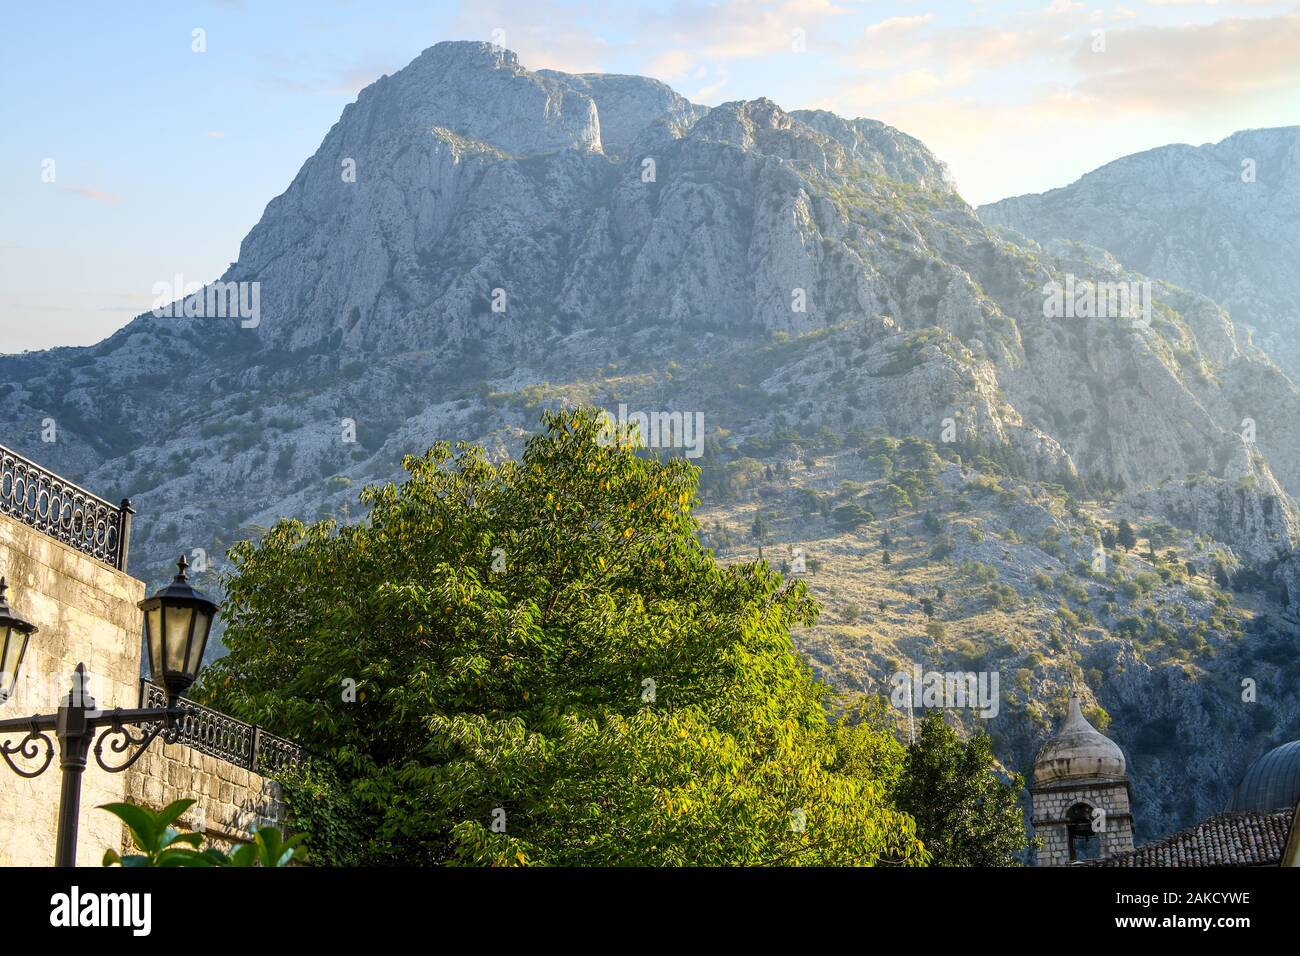 One of the many beautiful and scenic mountains above the medieval city of Kotor, Montenegro. Stock Photo